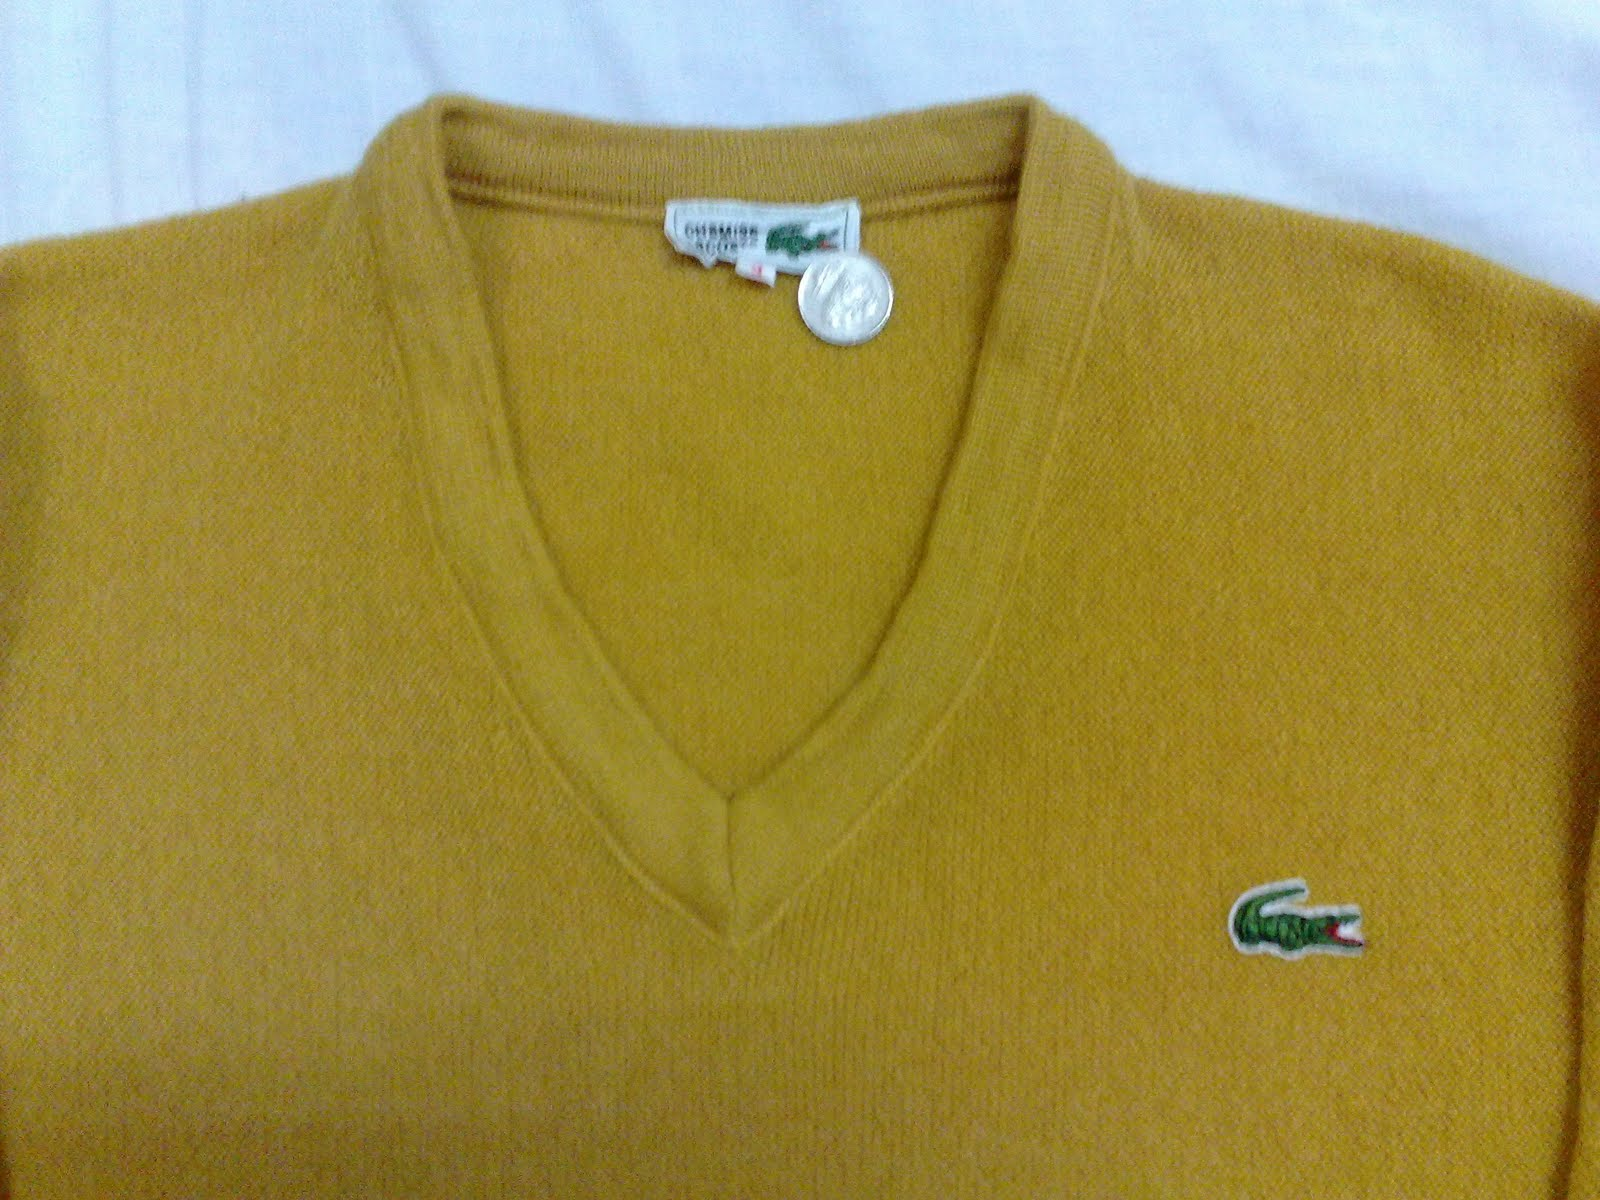 Vintage Lacoste Cardigan Cardigans Jumper Size 3 M condition 9 10